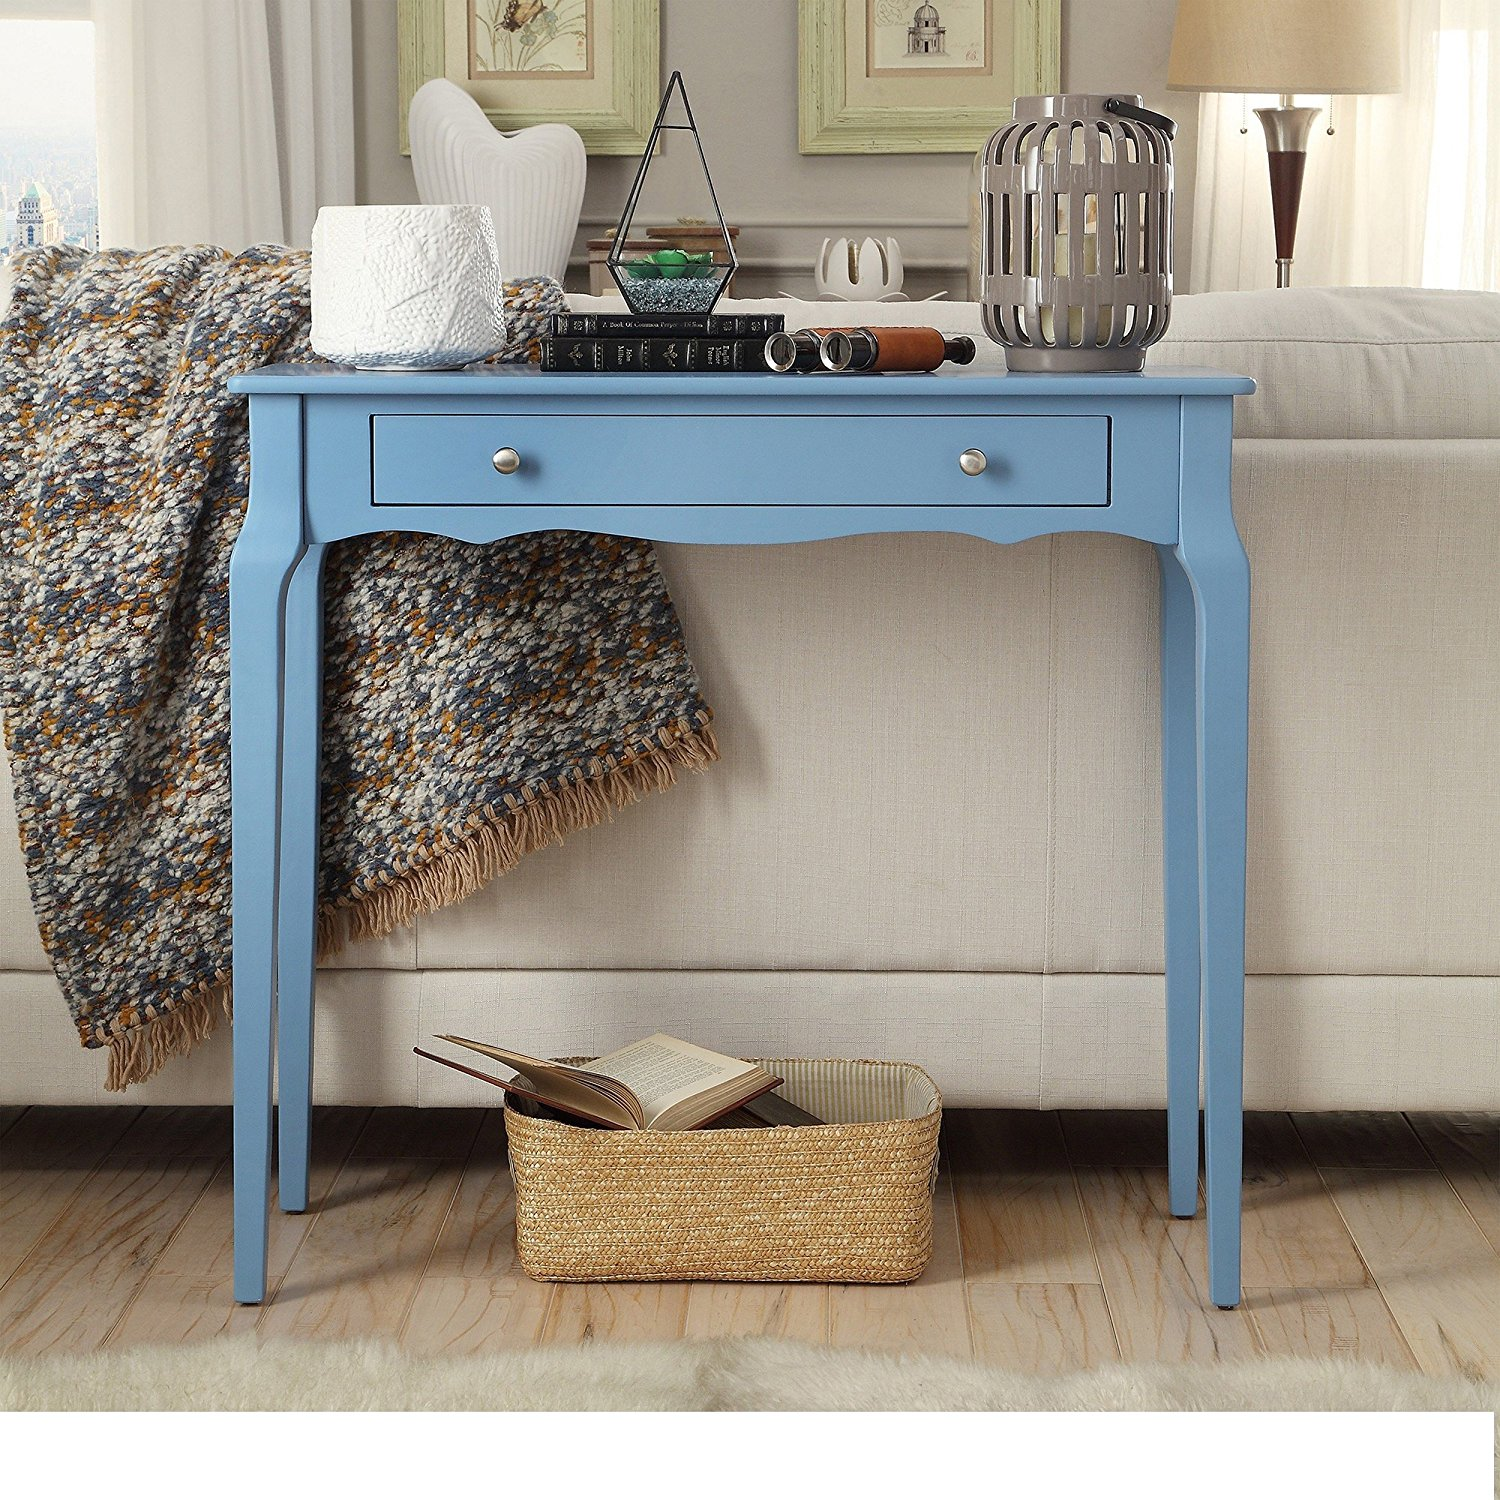 Modern Cottage Wood Narrow End Sofa Console Accent Table with Storage Drawer - Includes Modhaus Living Pen (Sky Blue)